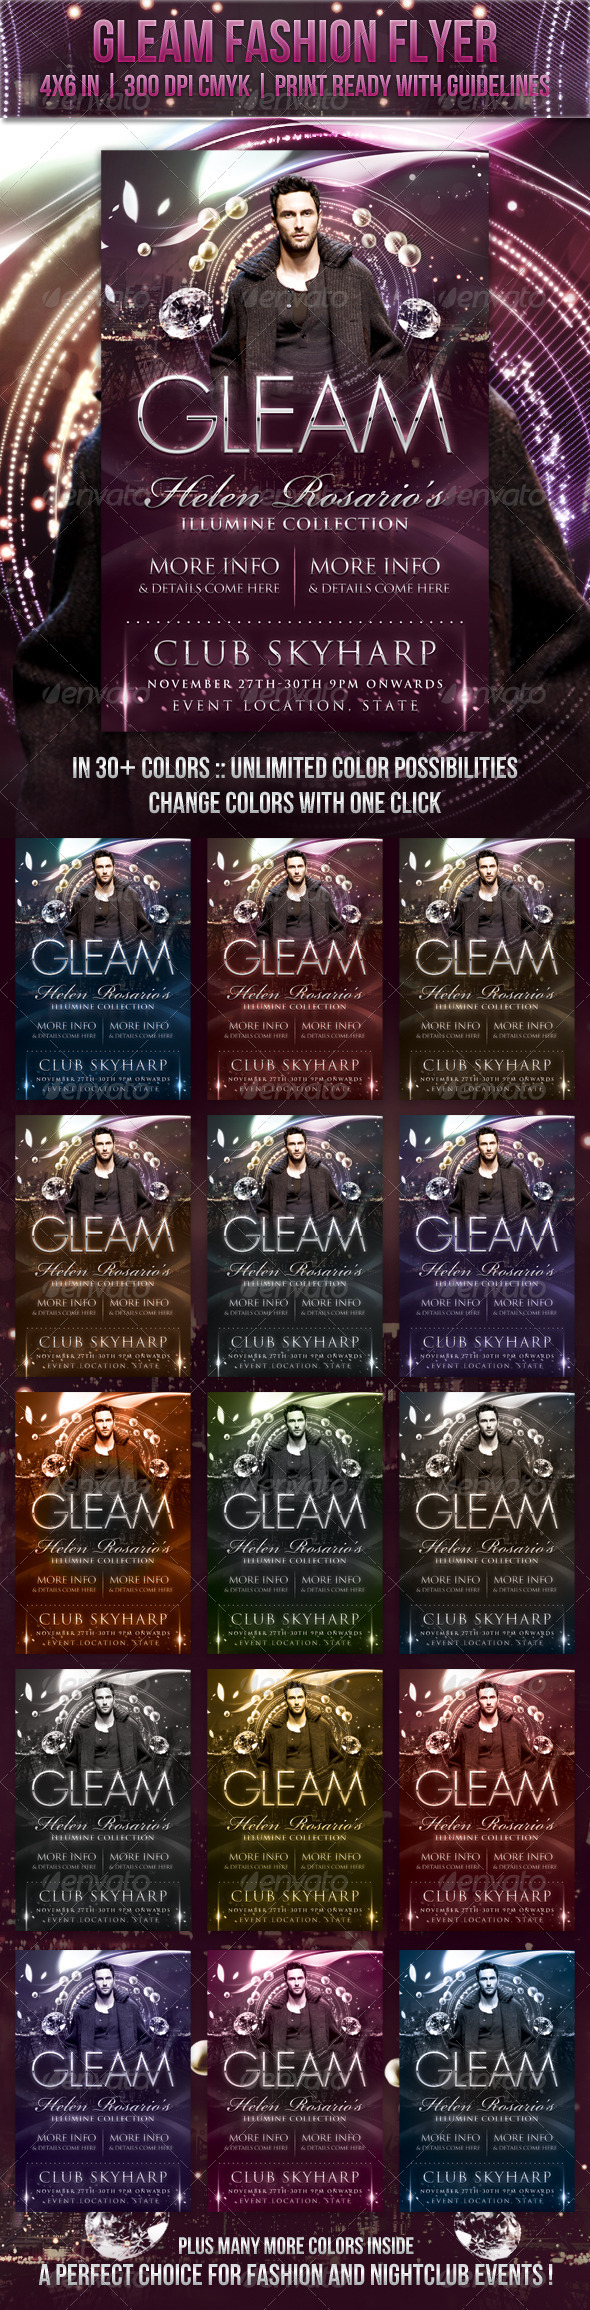 Gleam Fashion Flyer